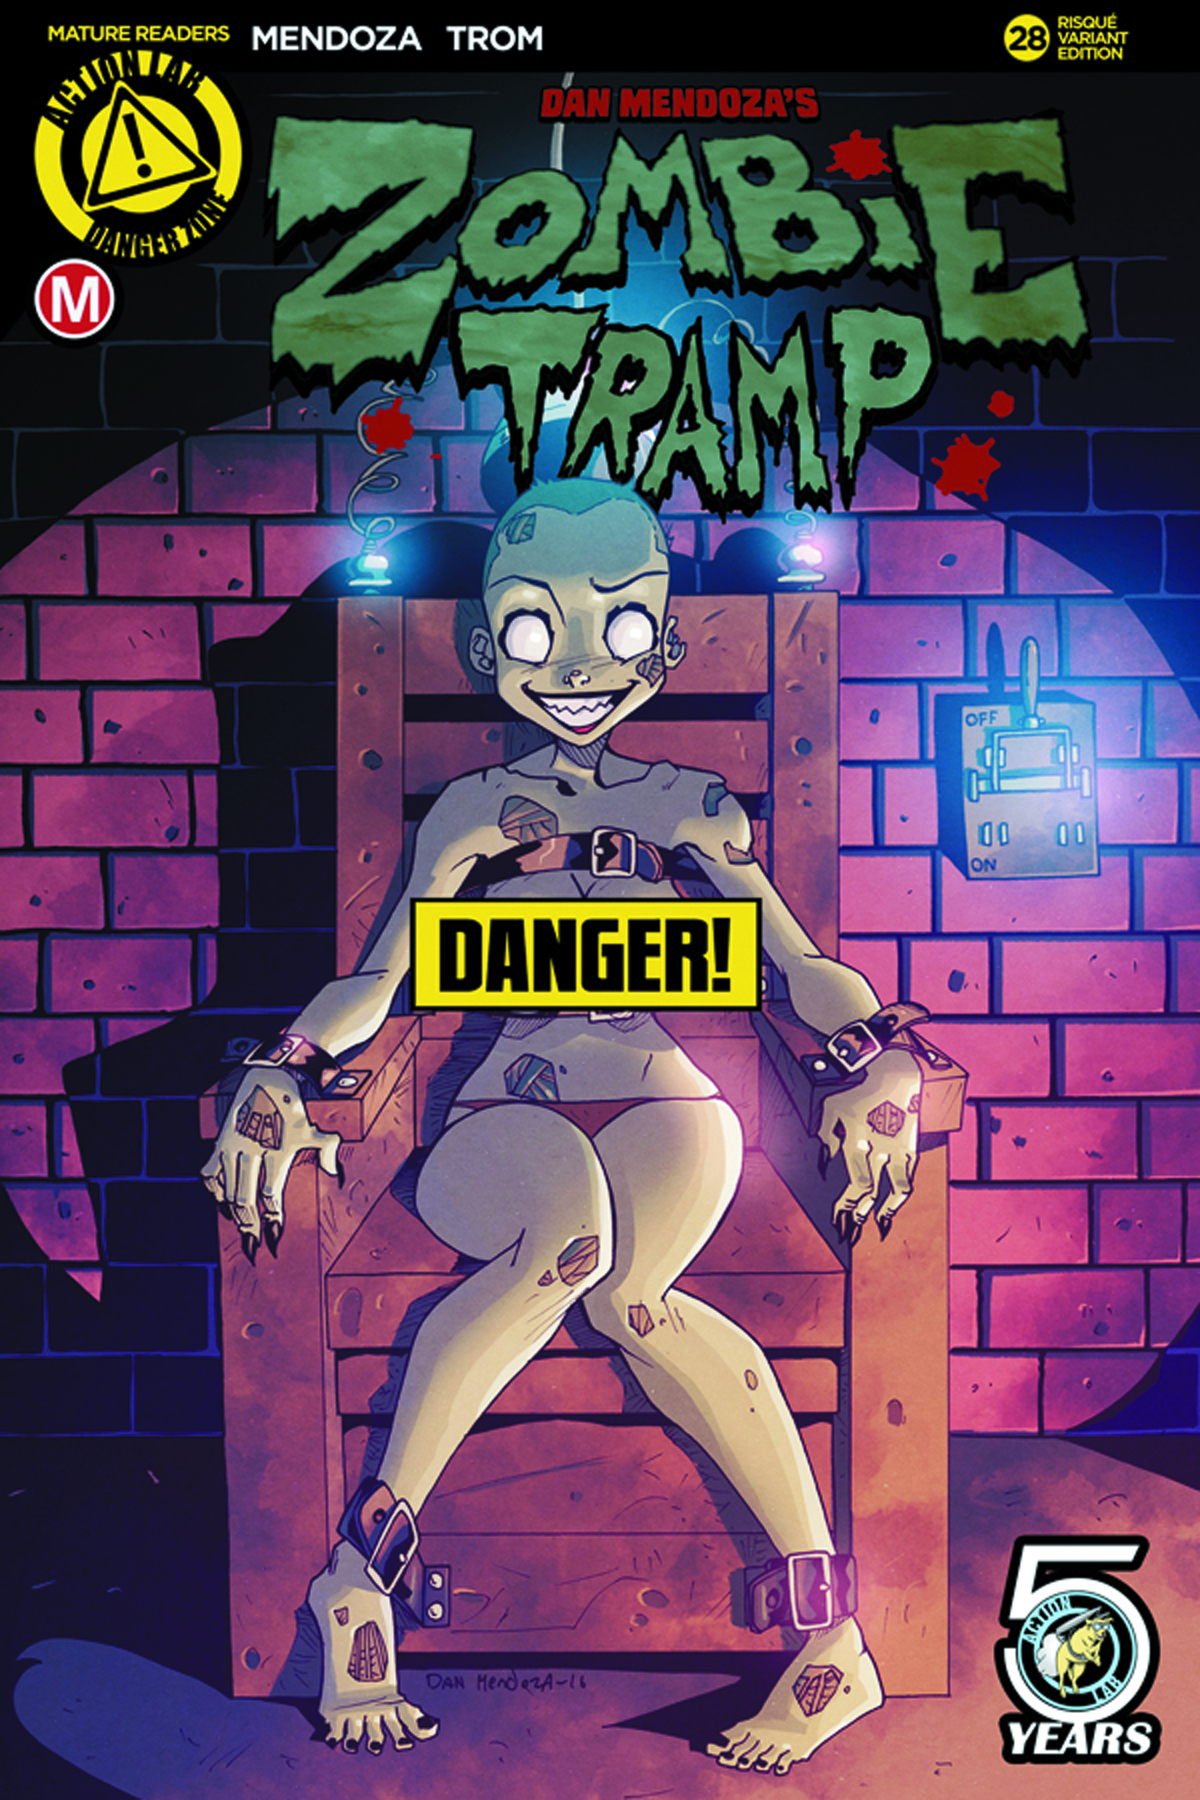 ZOMBIE TRAMP ONGOING #28 CVR B MENDOZA RISQUE (MR)